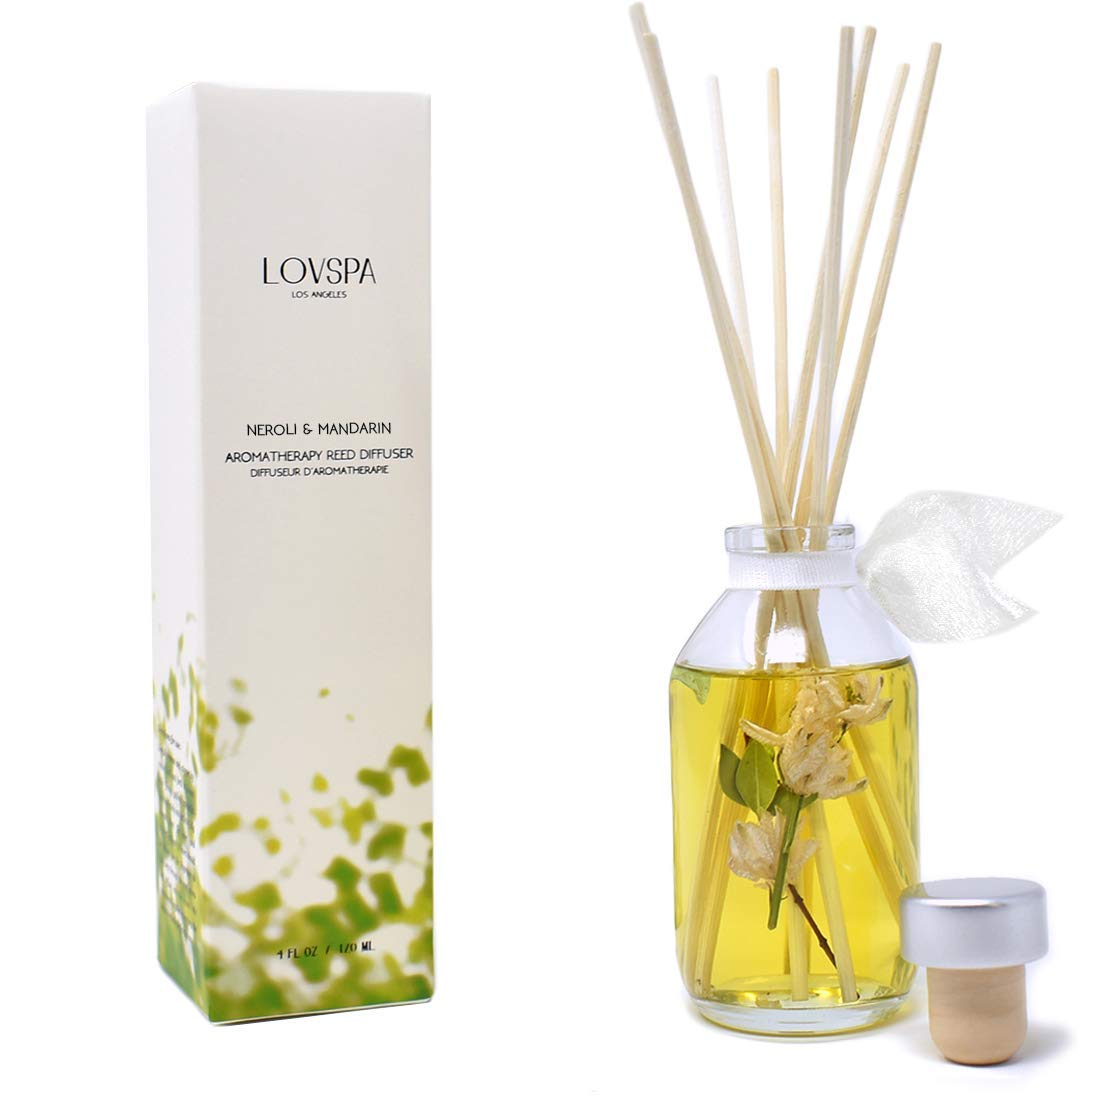 LOVSPA Neroli & Mandarin Reed Diffuser Set - Home Fragrance Made with Essential Oils & Natural Botanicals - Orange Blossom, Lemon, Iris & Petitgrain l Home Decor & Housewarming Gift Idea by LOVSPA (Image #1)